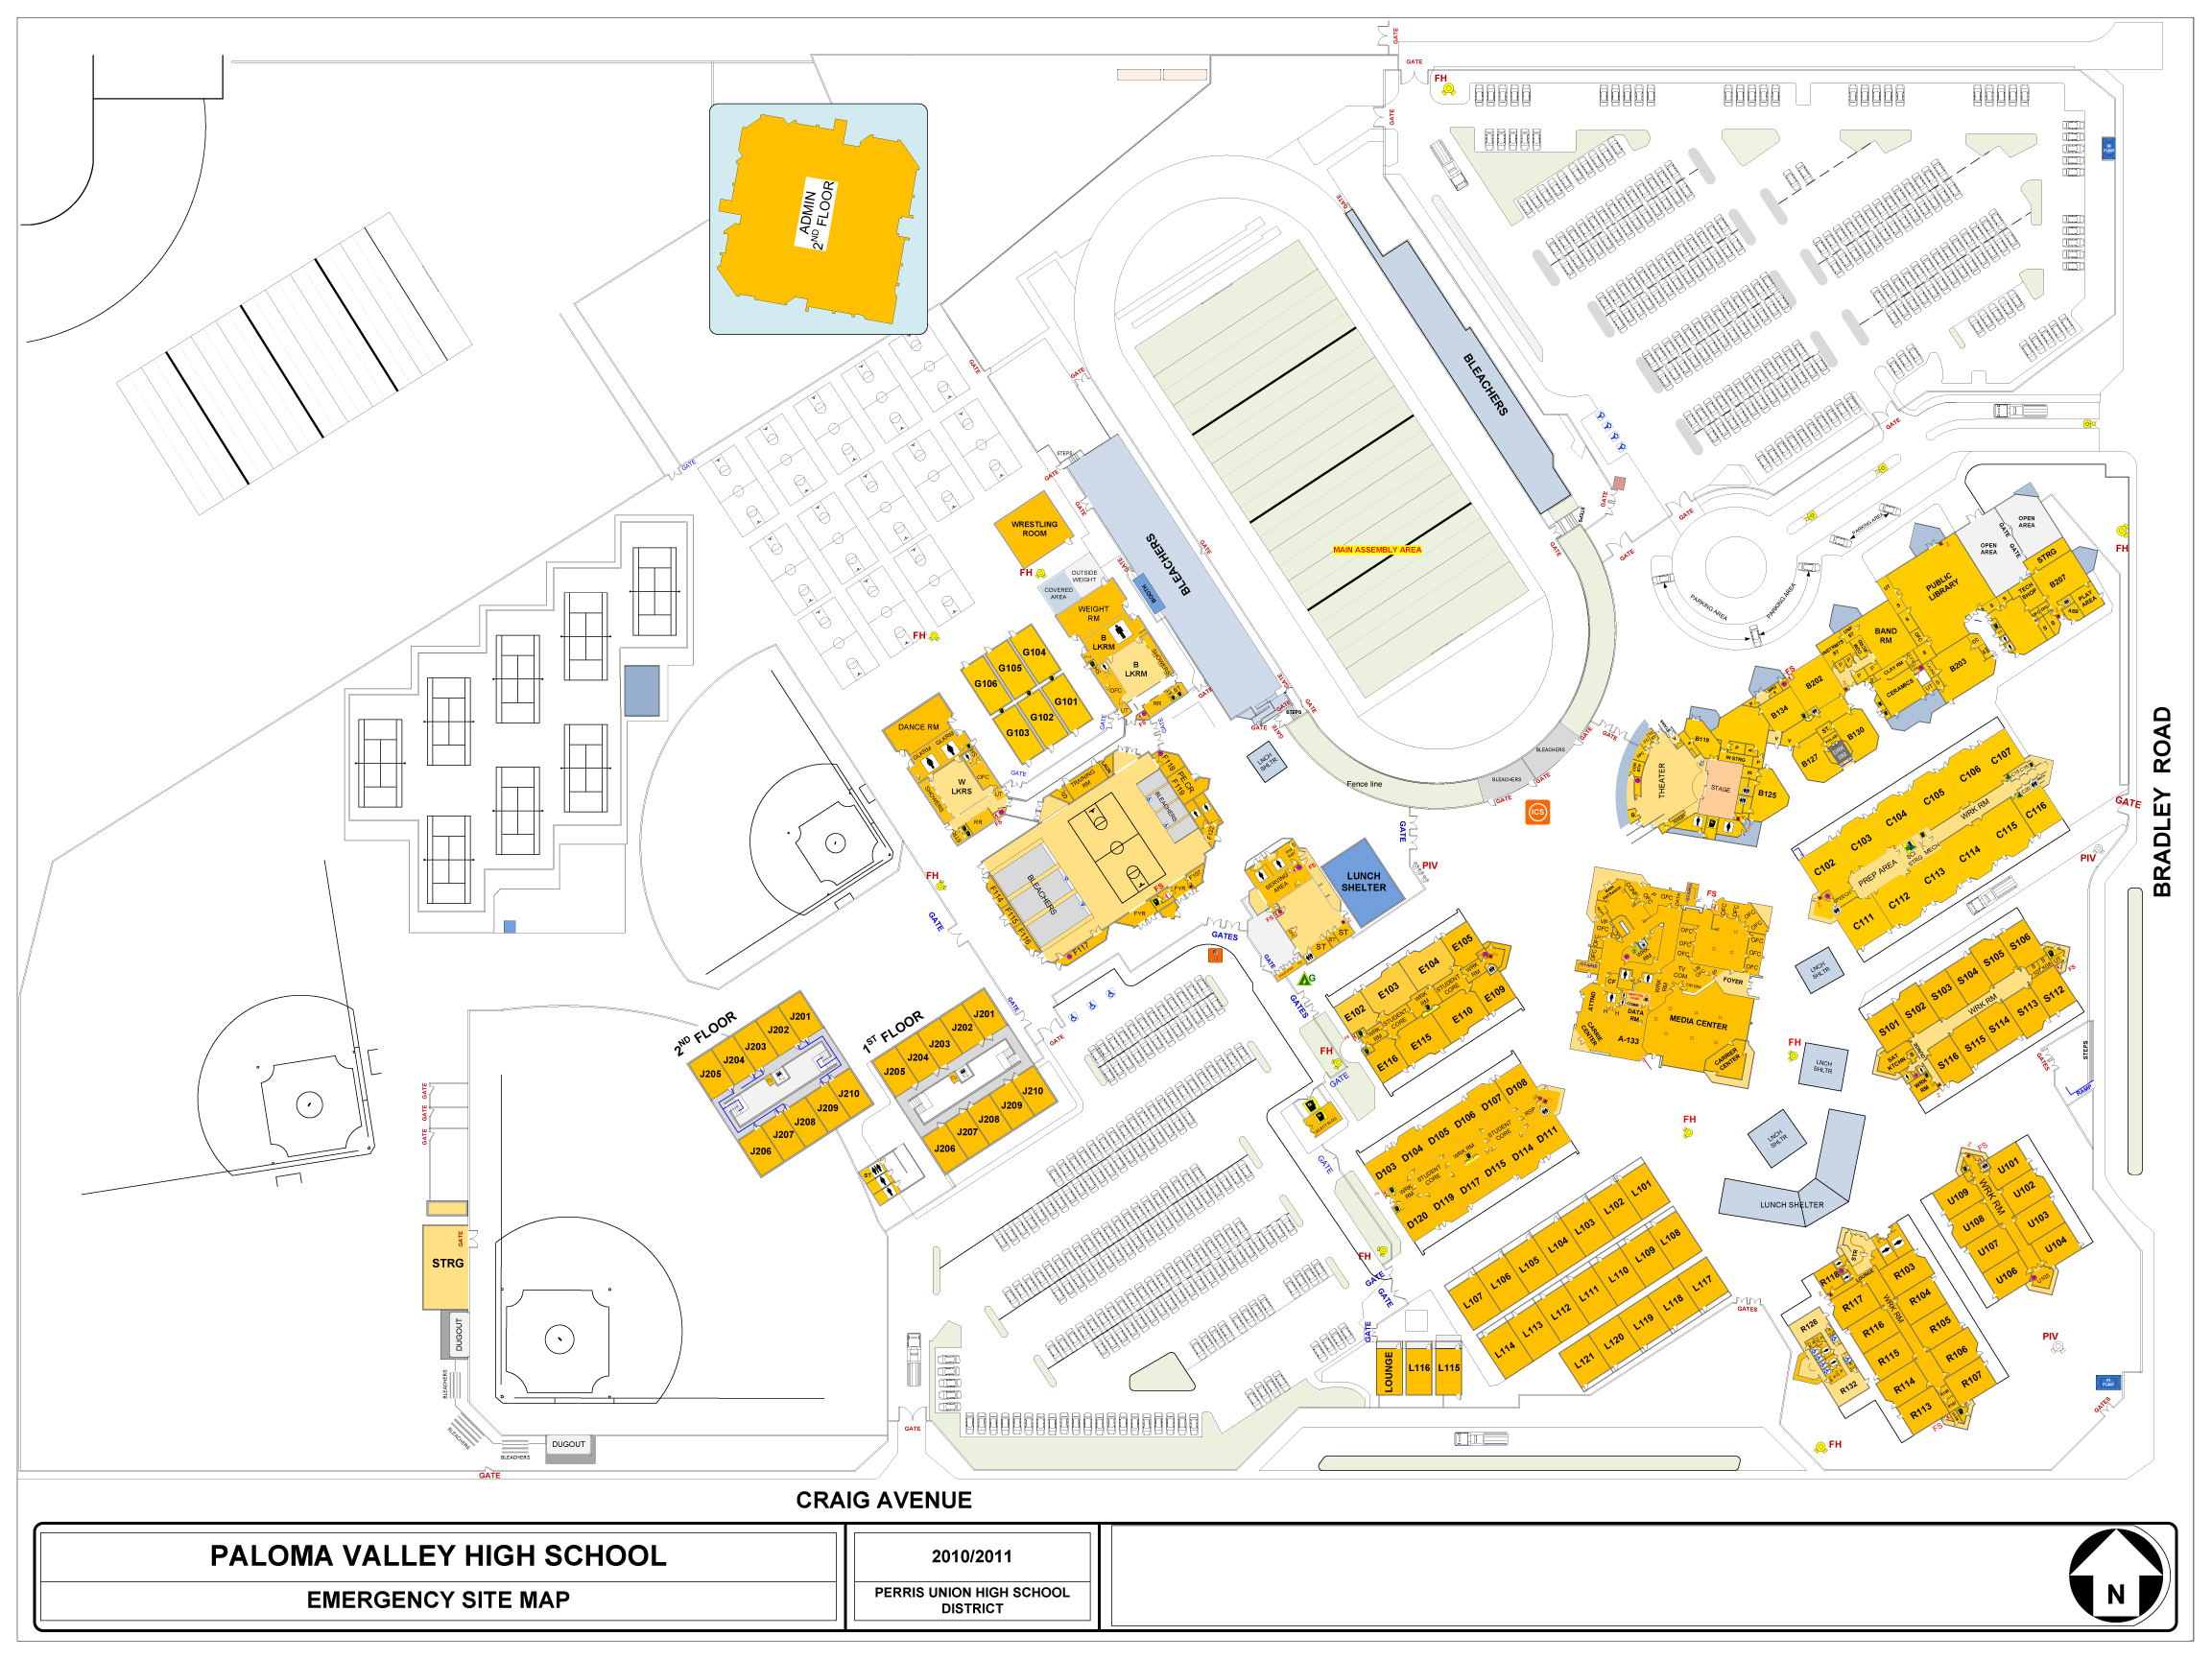 Map of PVHS Campus